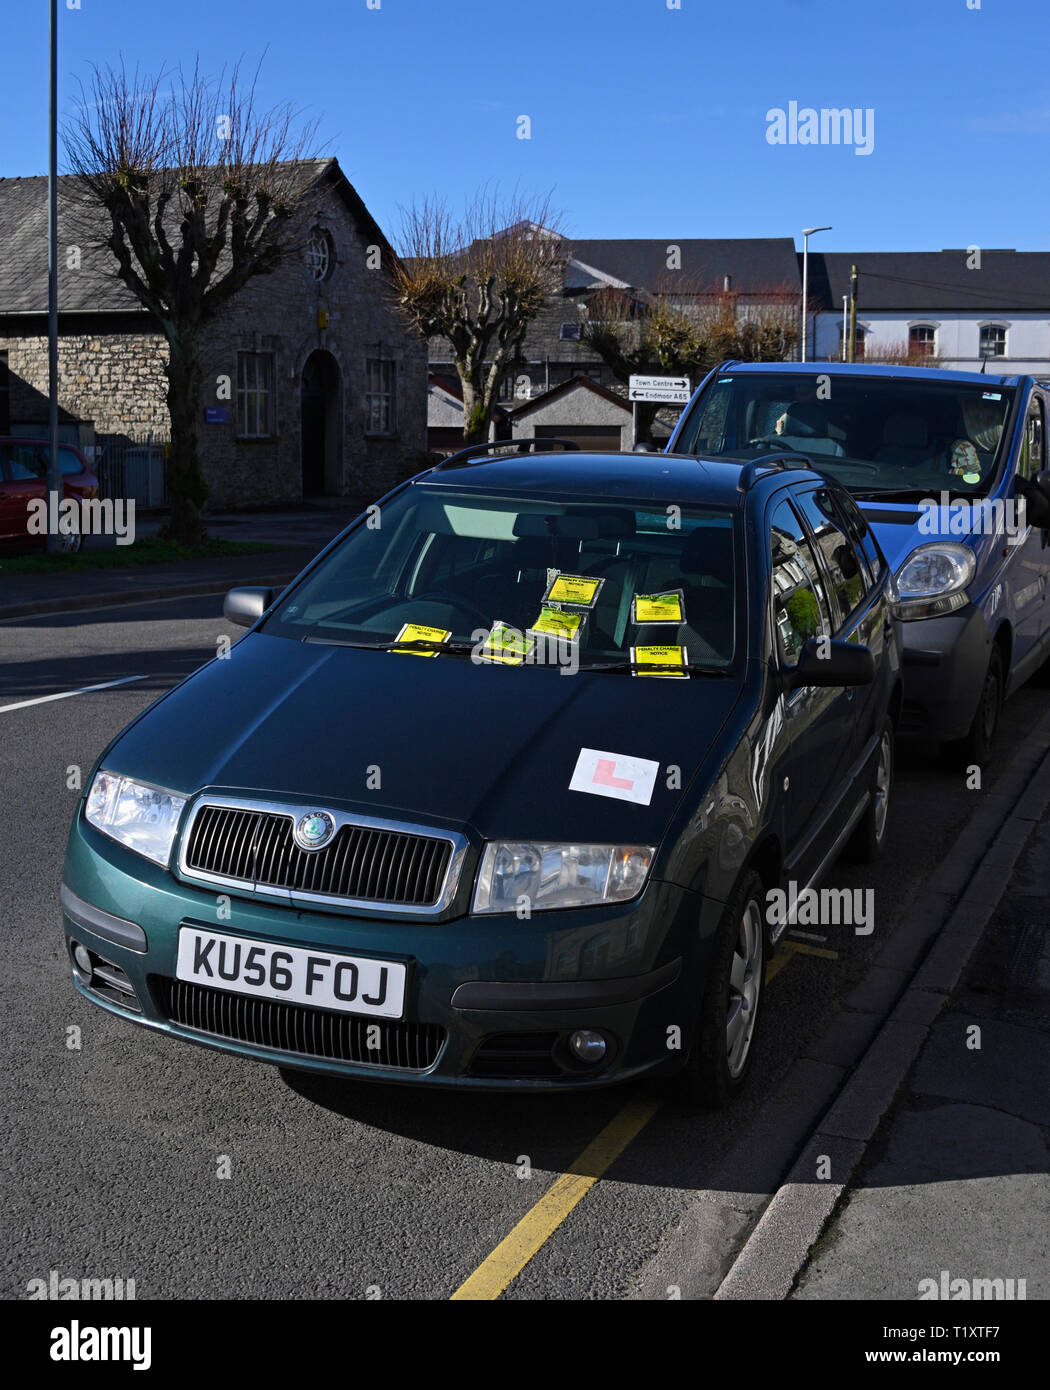 Illegally parked car on yellow line with six penalty charge notices. Parkside Road, Kendal, Cumbria, England, United Kingdom, Europe. Stock Photo